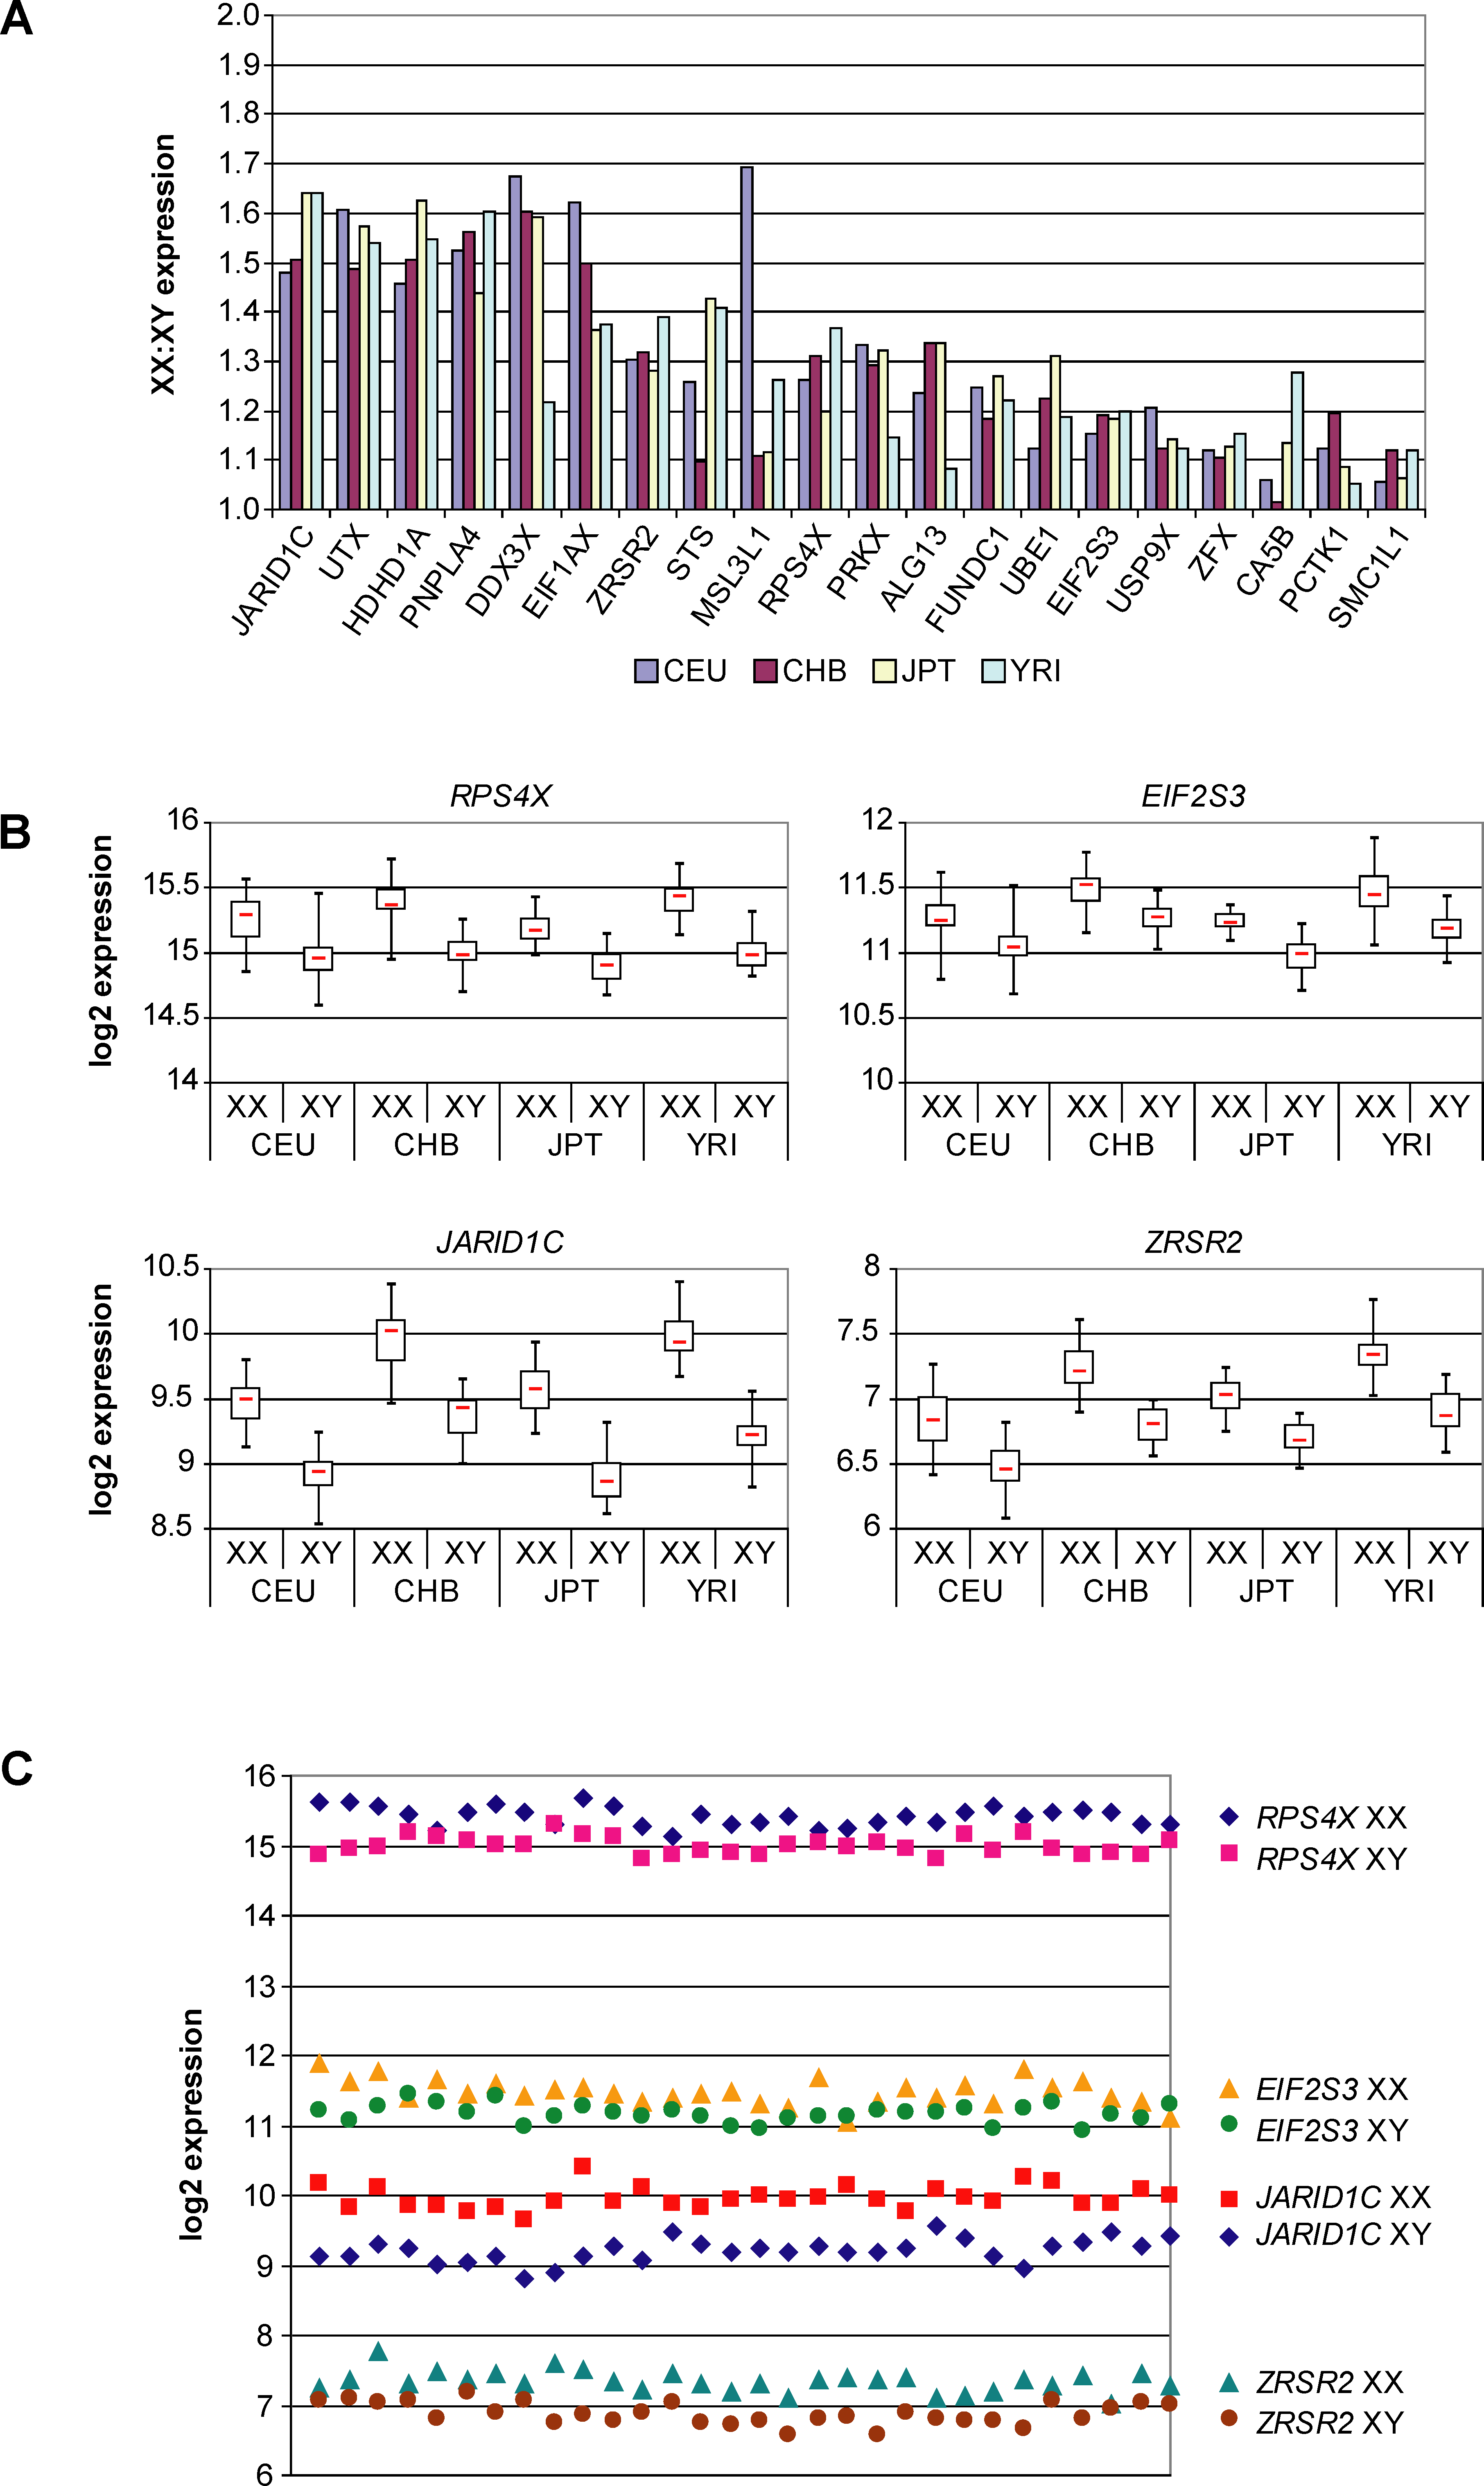 Comparison of Female and Male Expression of Genes with Higher Female Expression